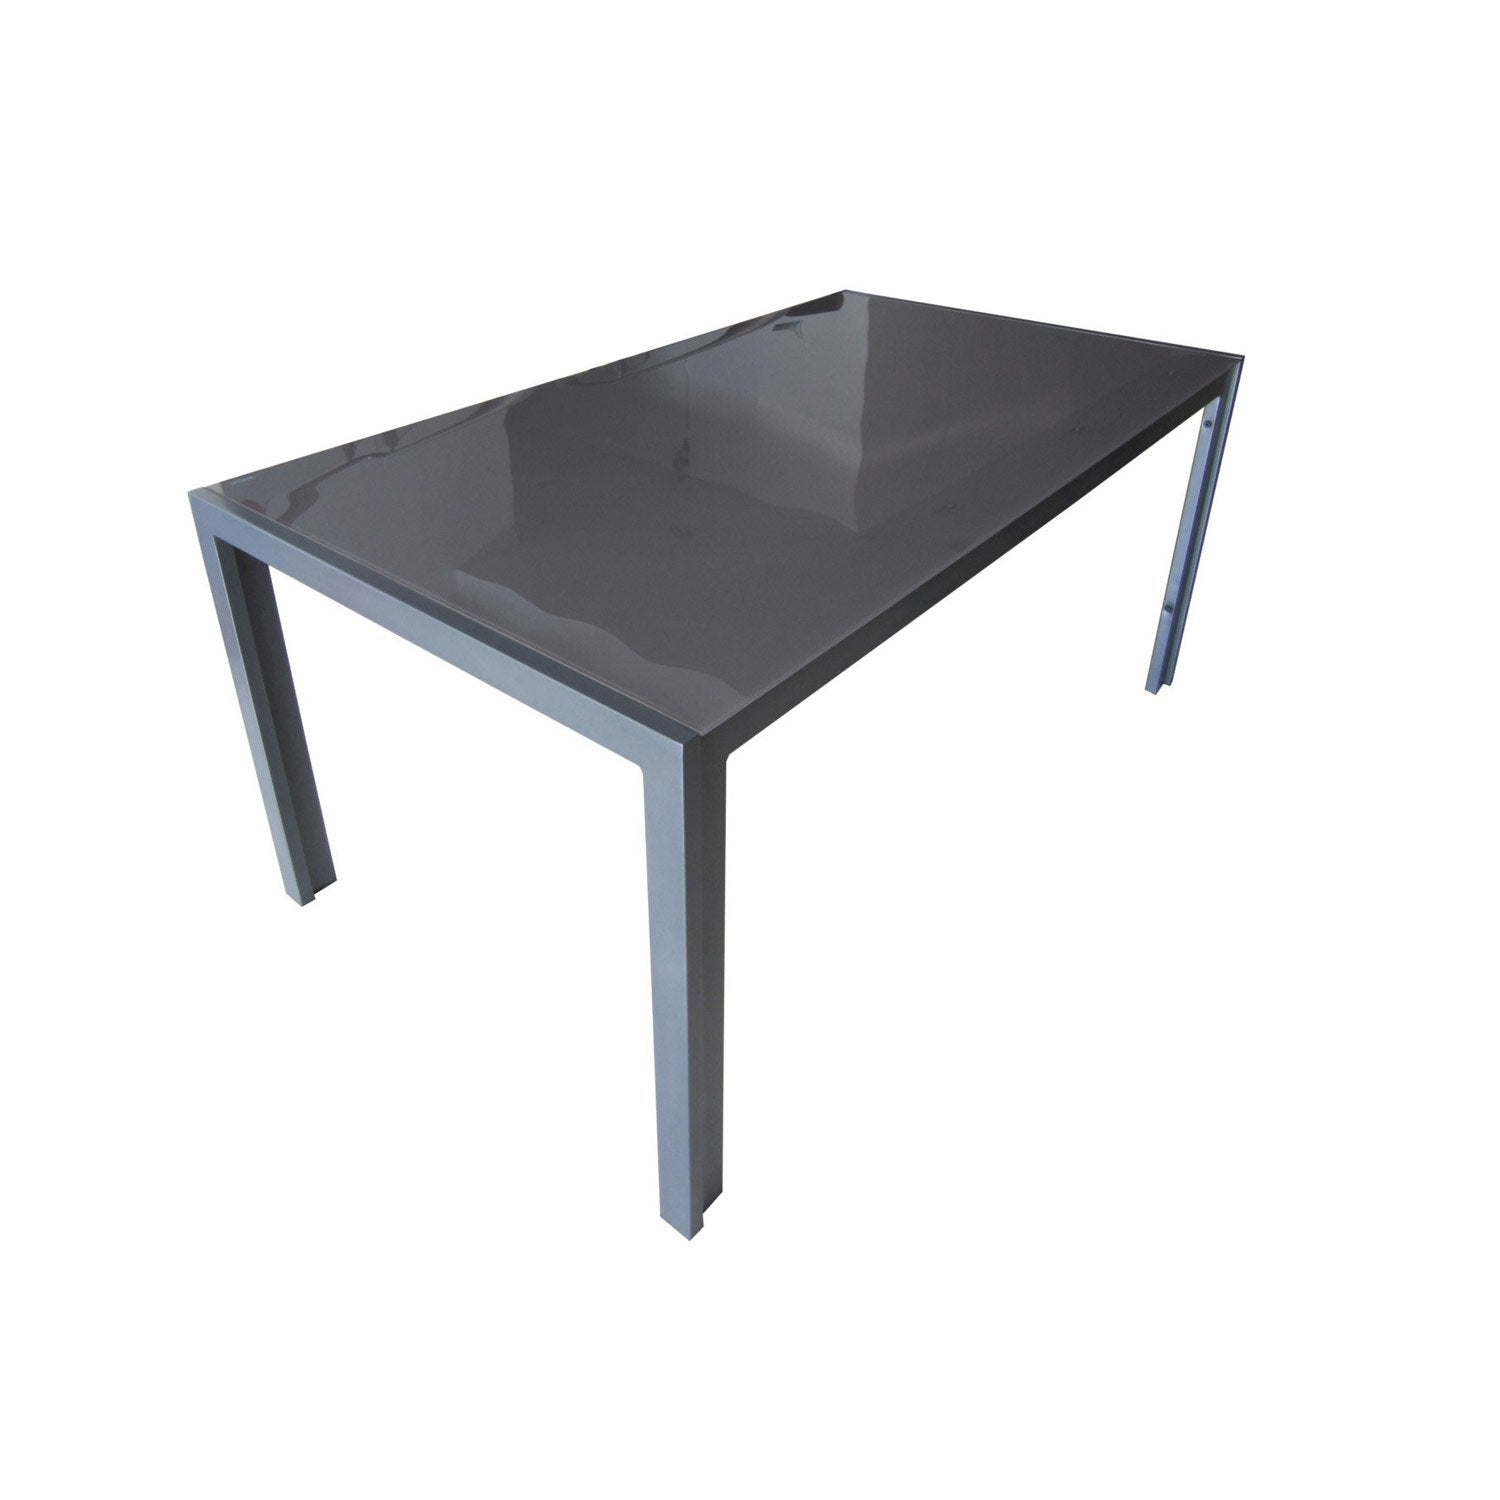 Table de jardin rectangulaire grey gris 6 personnes leroy merlin - Leroy merlin table jardin ...